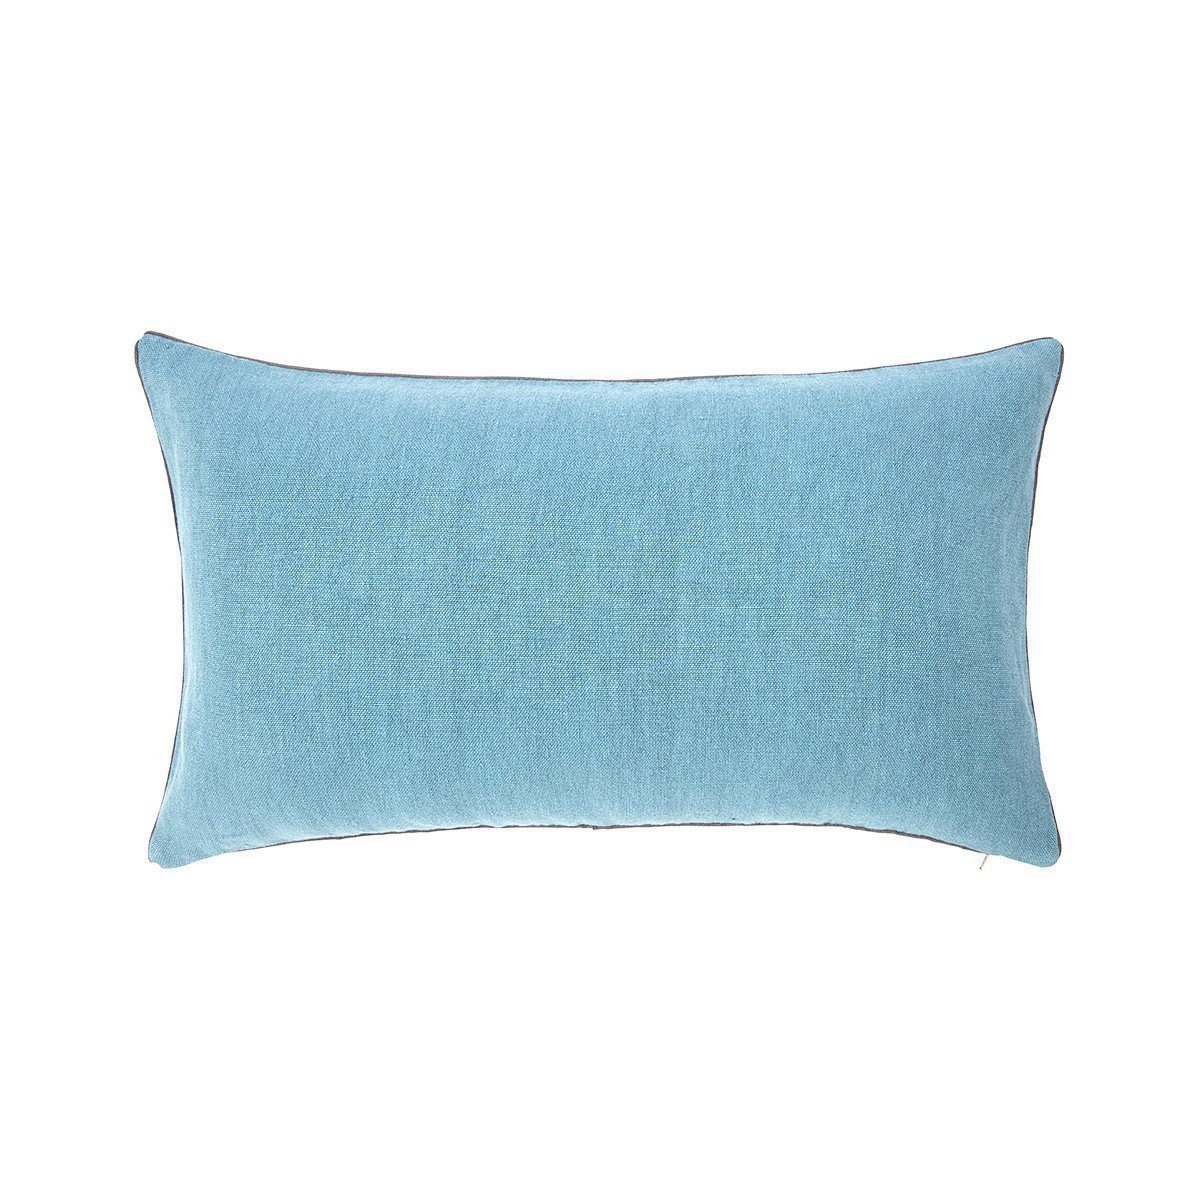 Pigment Denim Pillow by Iosis